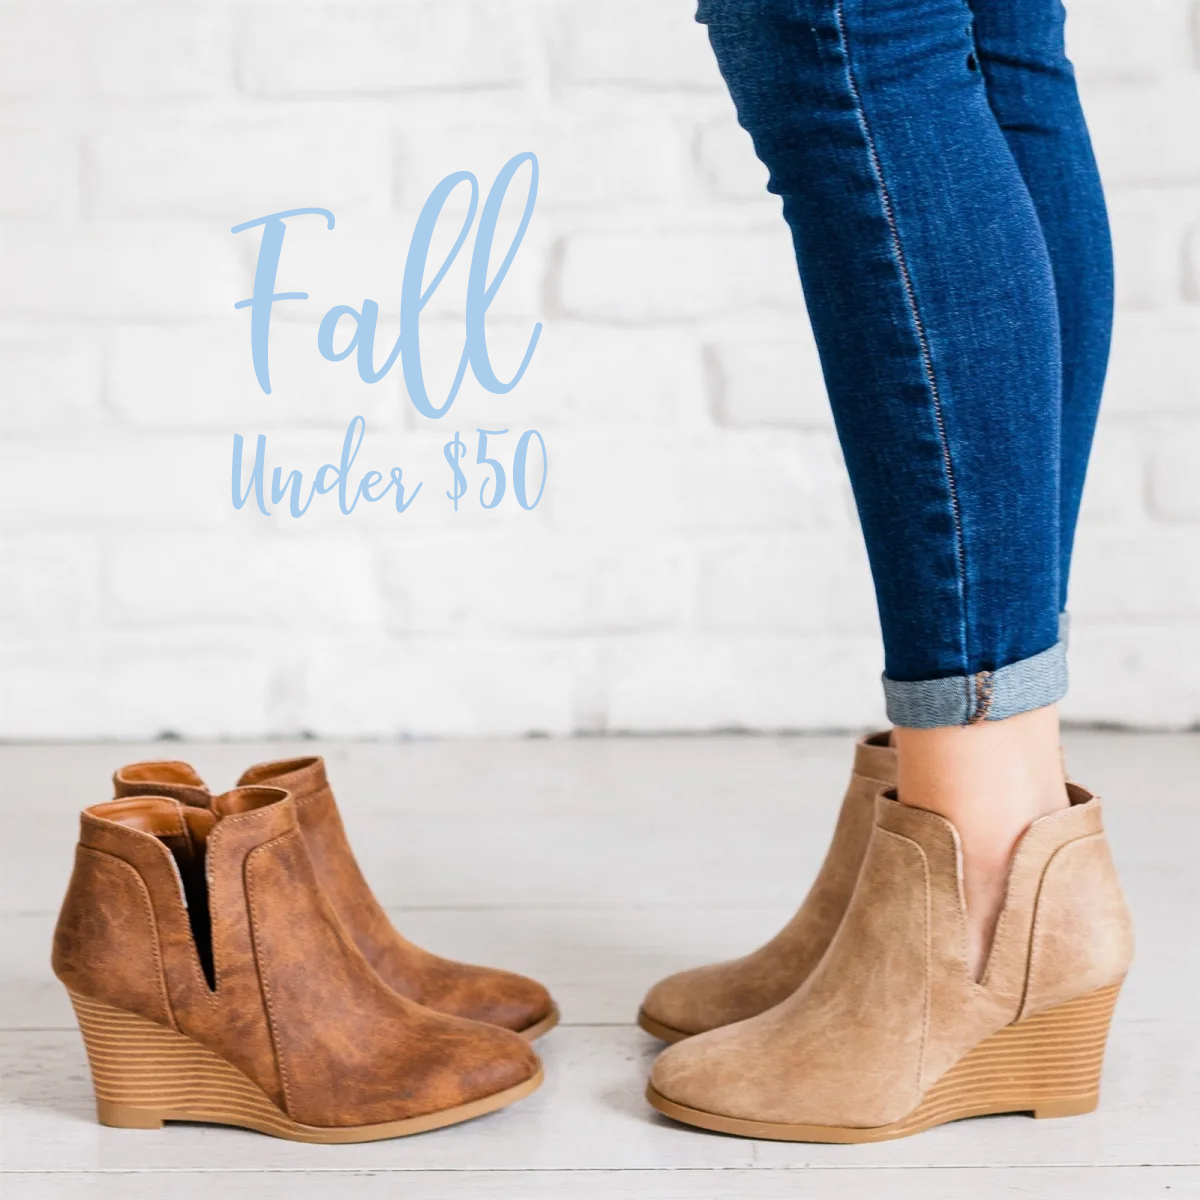 These popular, side-cut booties are amazing. They would really dress up an outfit with little effort, a big plus in my opinion!   $34.99 plus Free Shipping. US only. Seller usually ships within 2 business days. Ships no later than Wed, Aug 28.